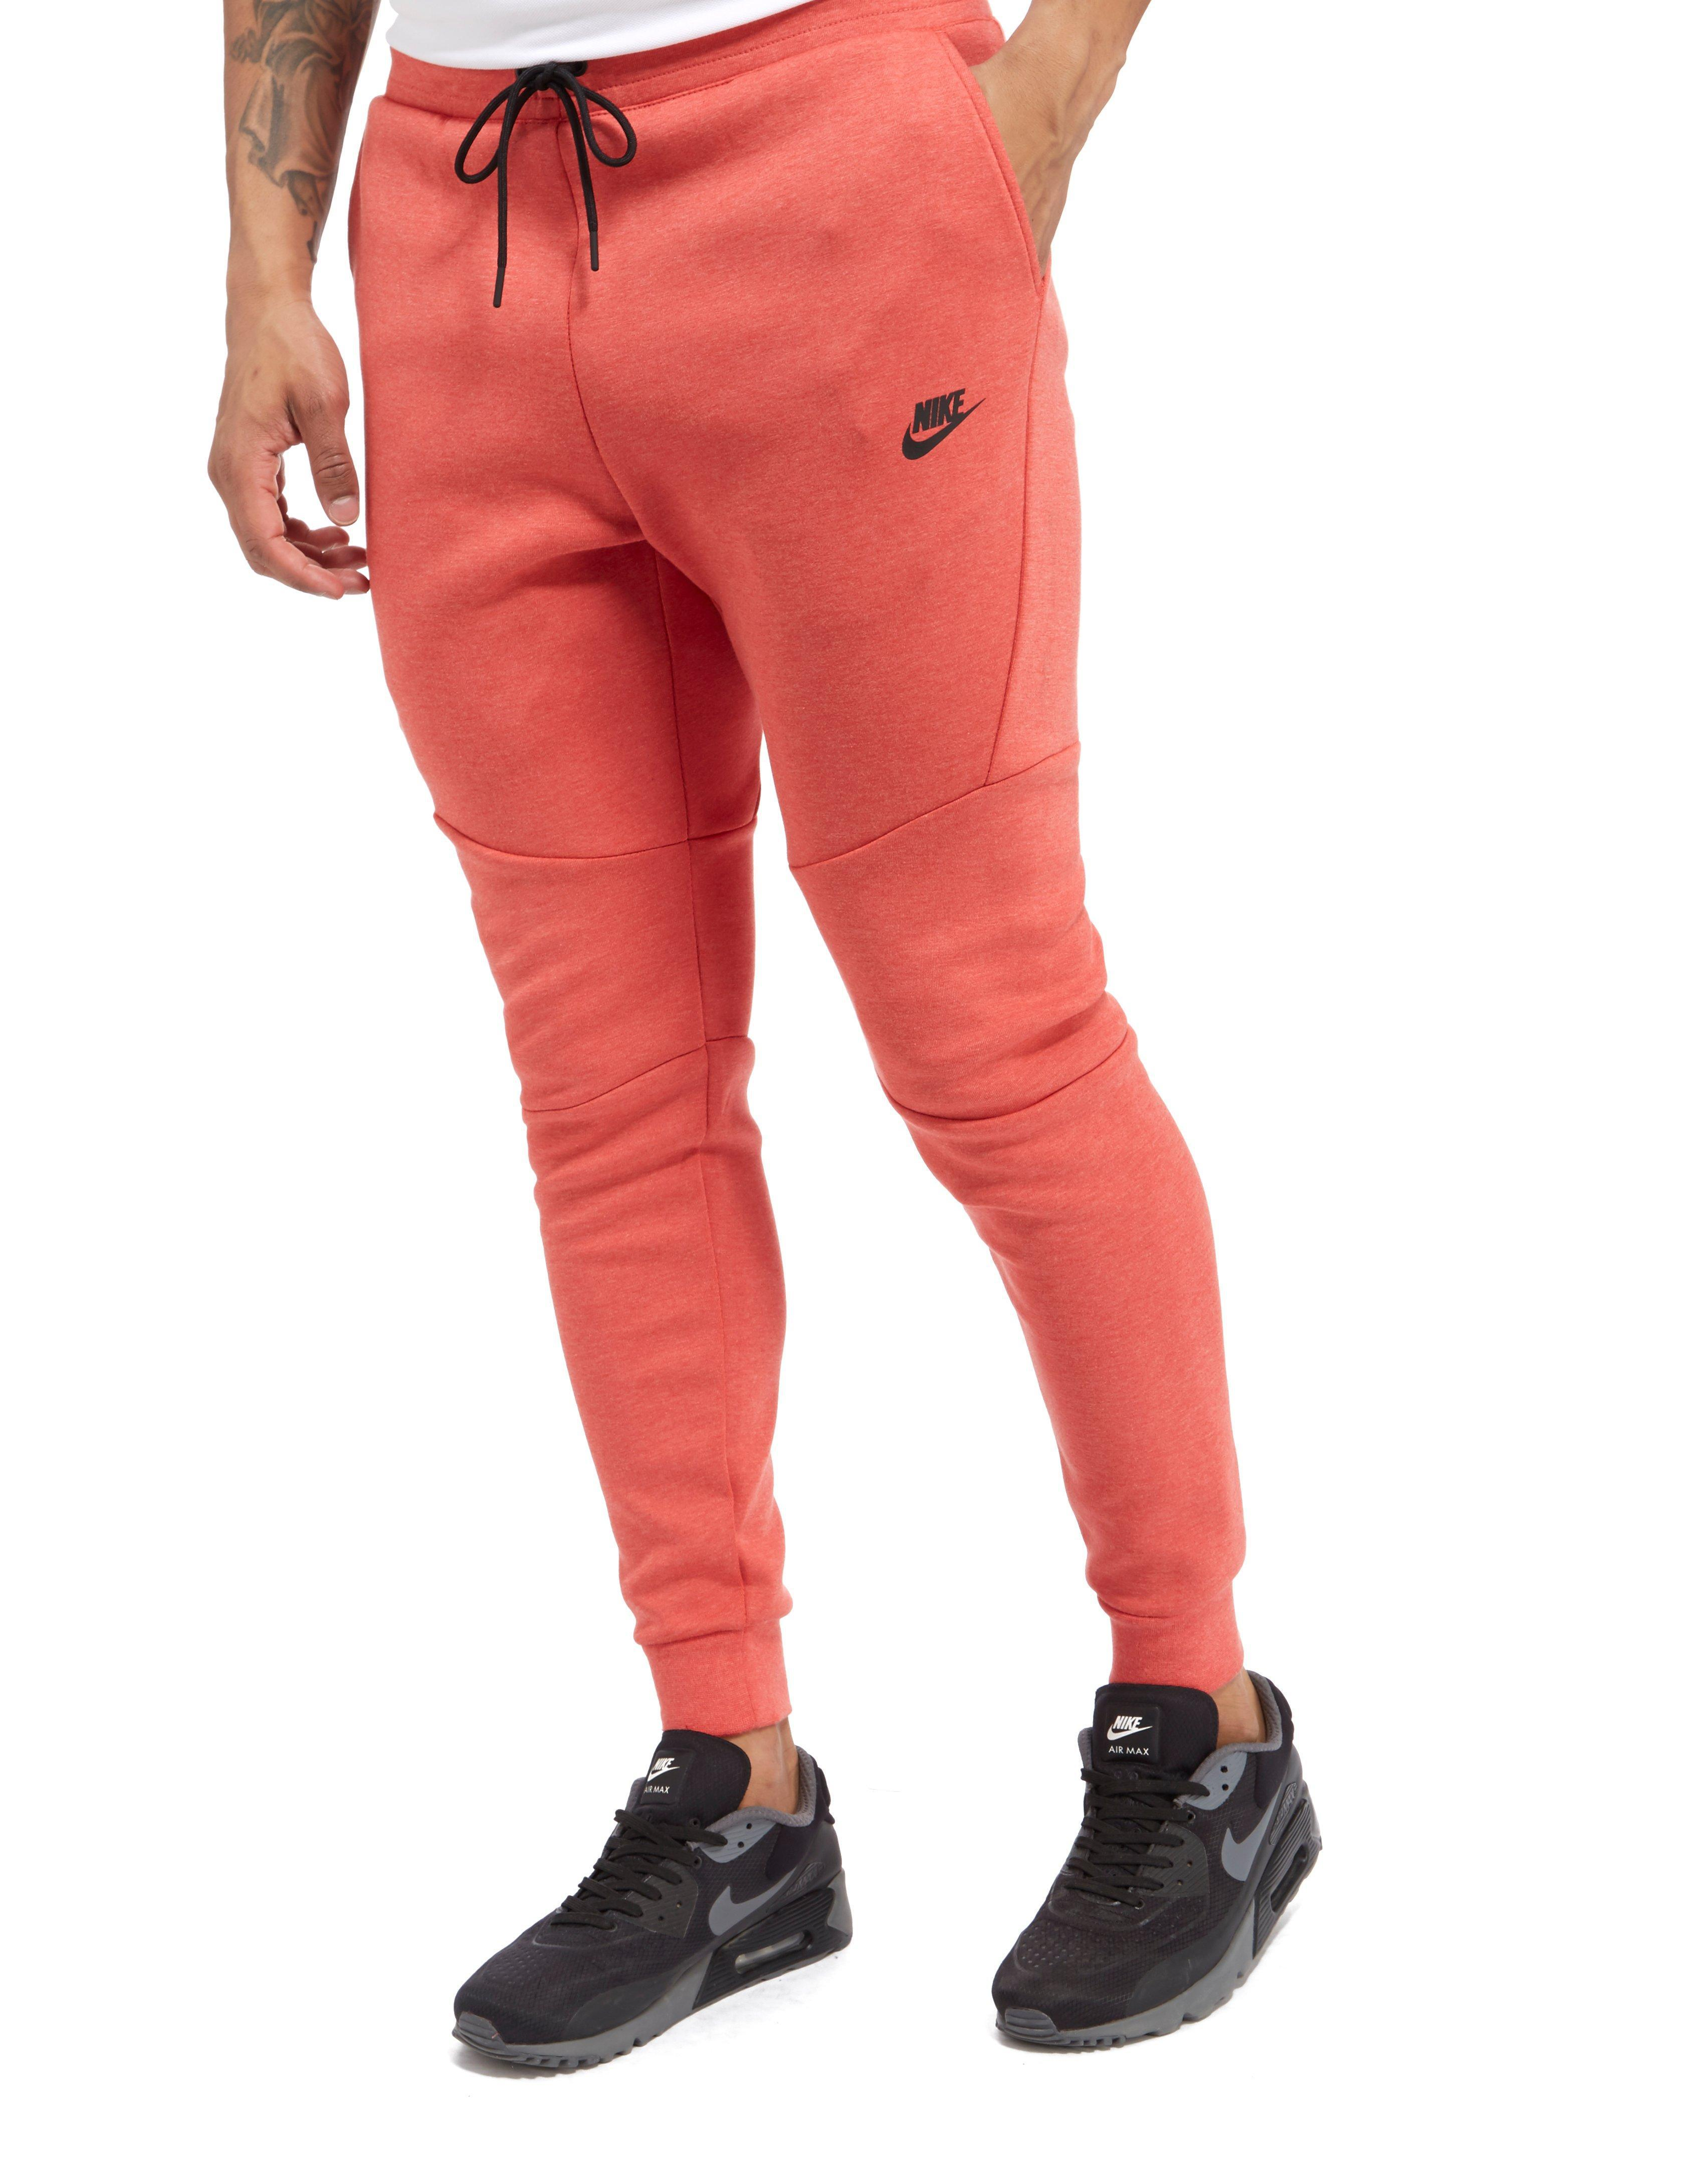 Nike Tech Fleece Pants in Red for Men - Lyst 8284d2f3768f4